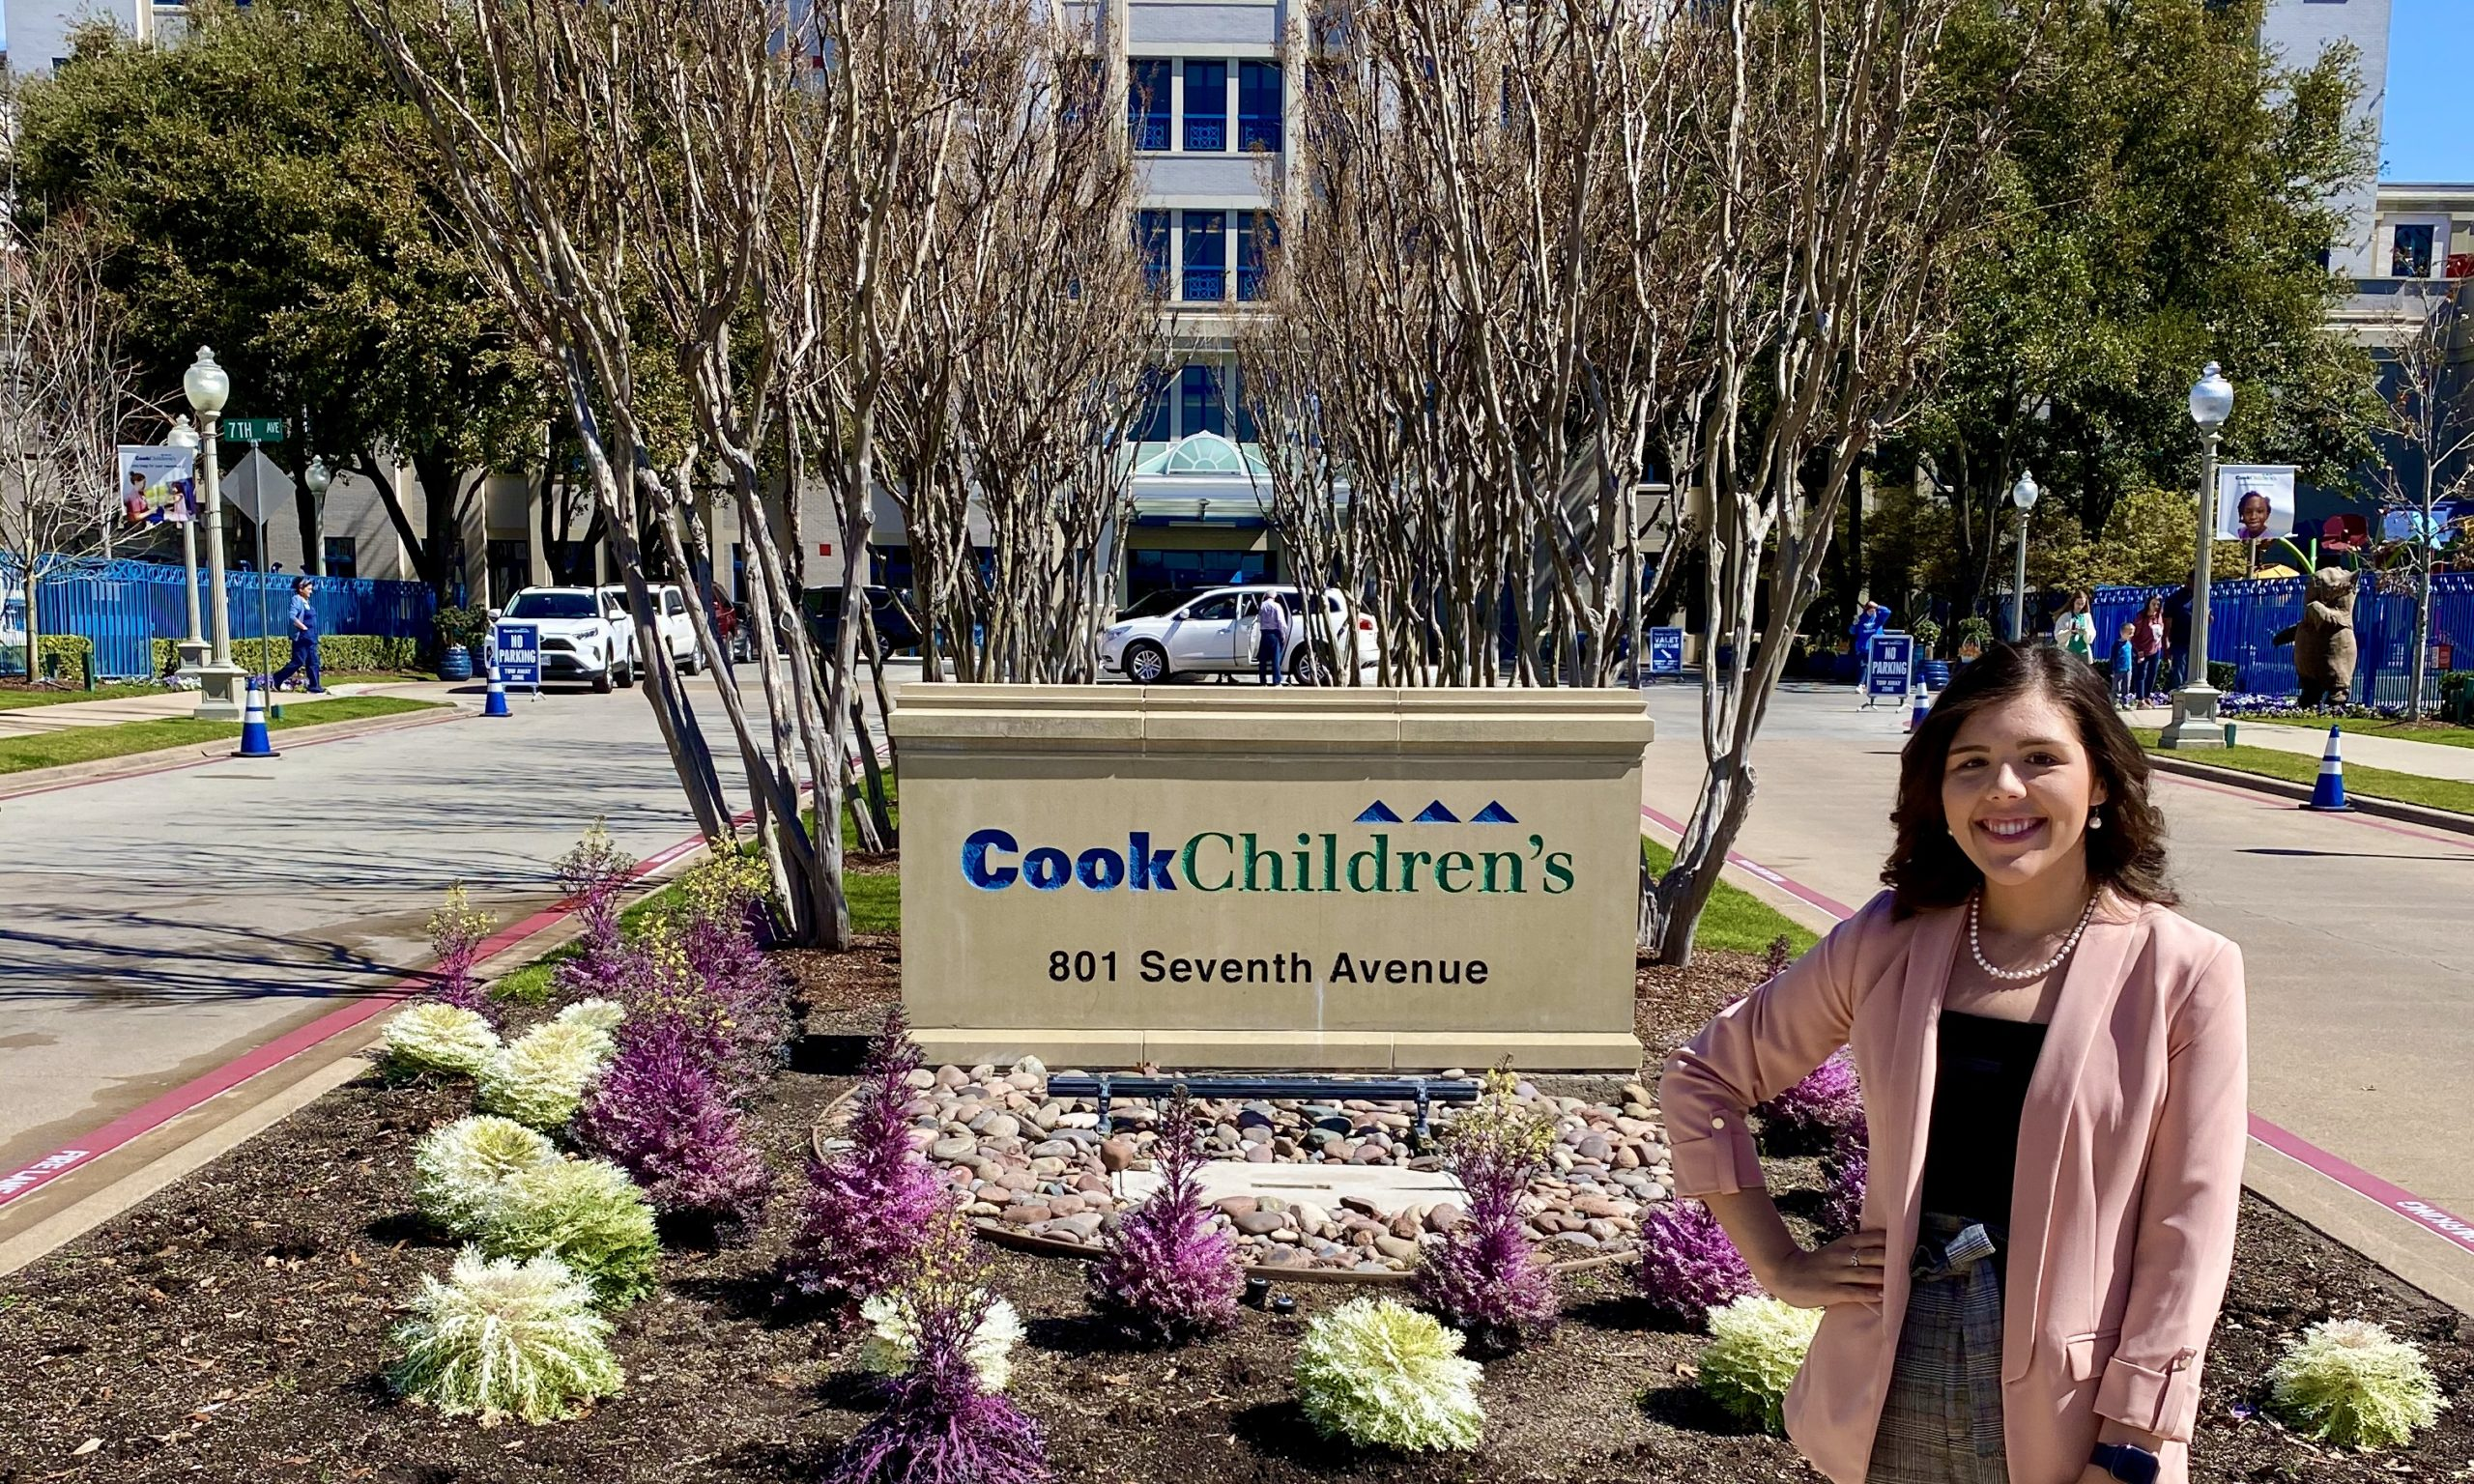 Recent HSU graduate, Emily Pierce has been accepted into the Critical Care Nurse Residency Program at Cook Children's Medical Center in Fort Worth.